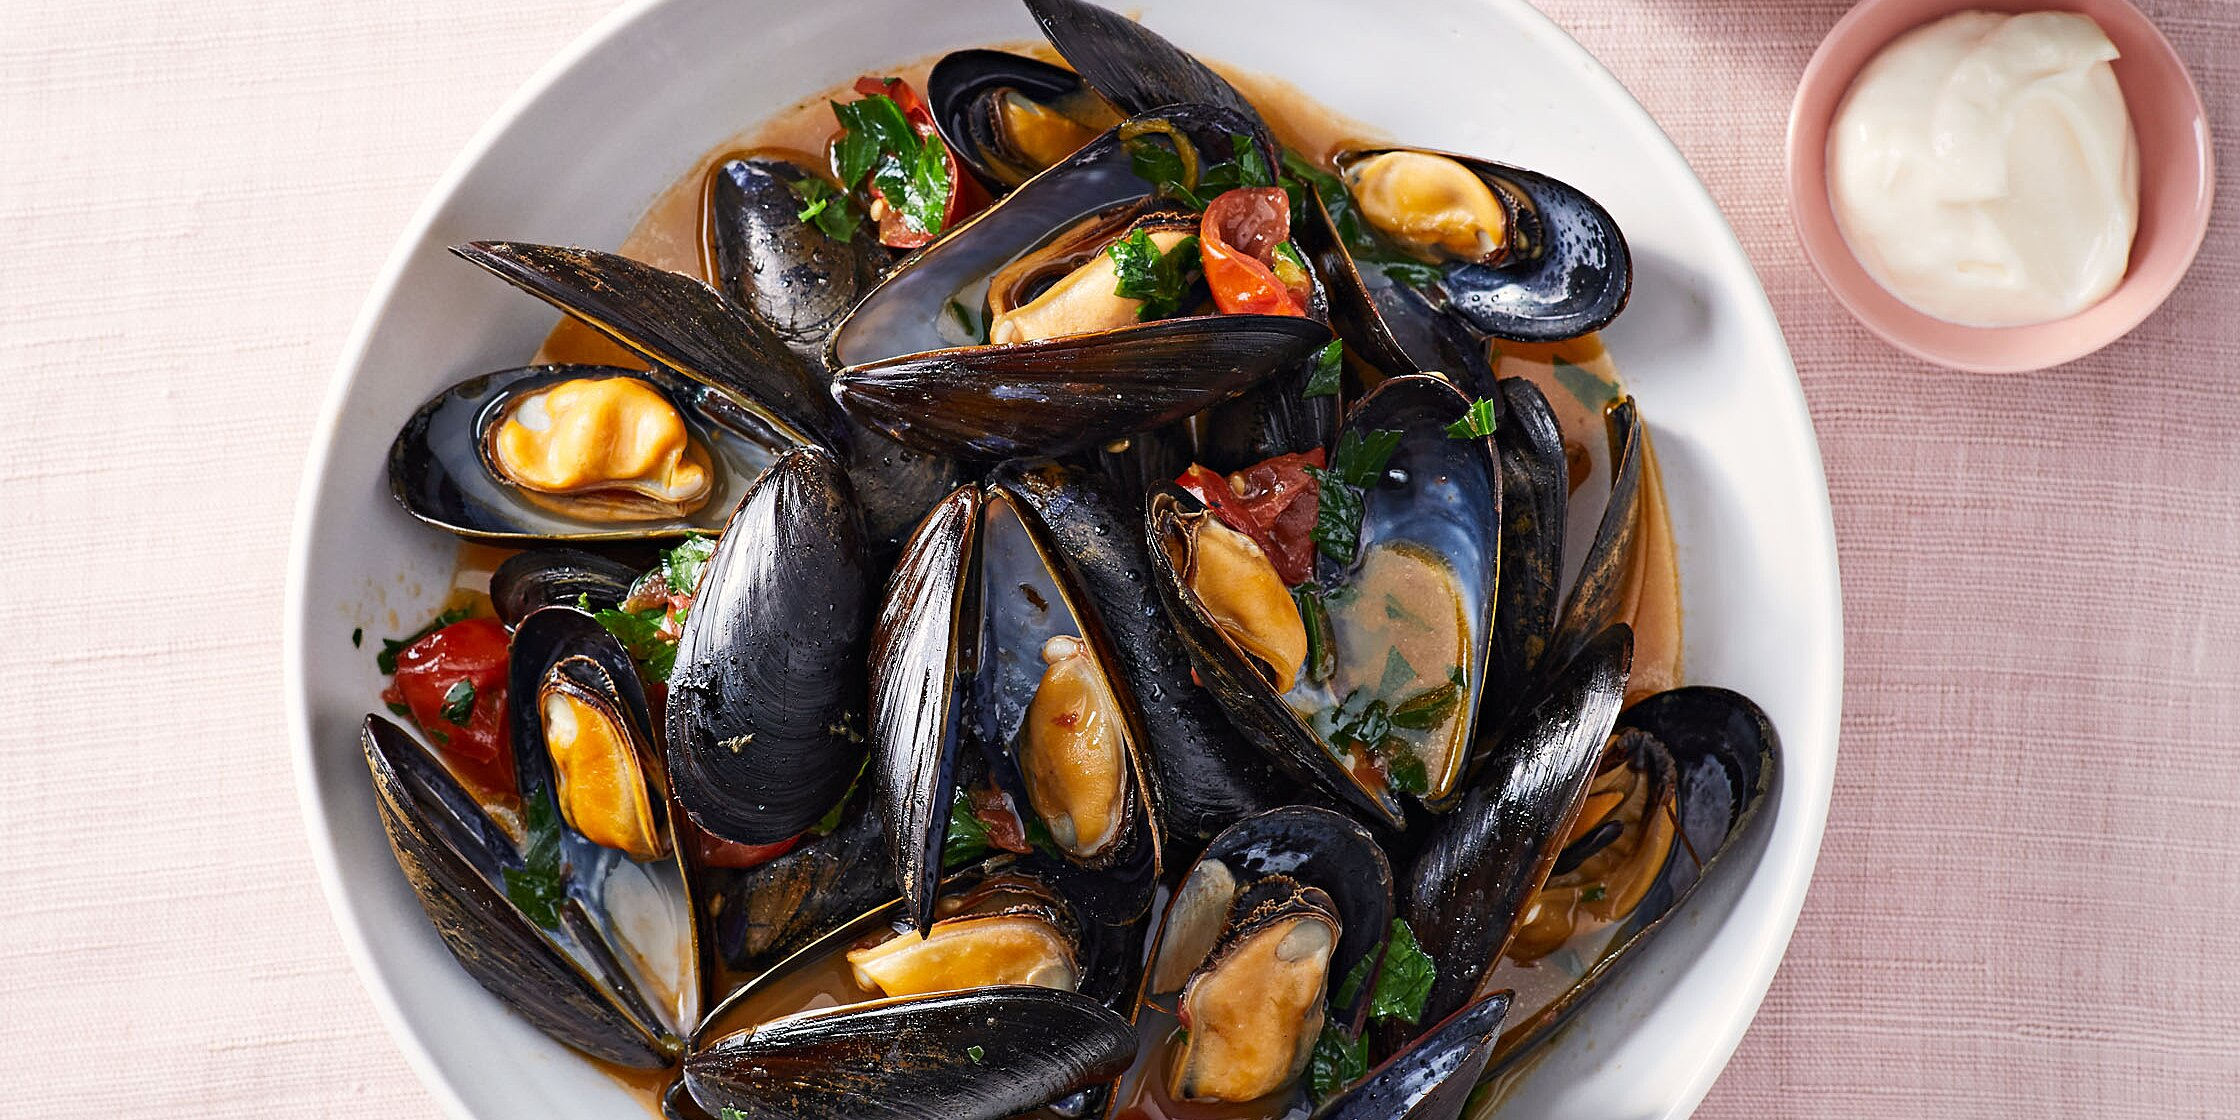 Why We Love Mussels: Easy Recipes That Spotlight the Beauty of This Quick-Cooking, Affordable, and Sustainable Shellfish